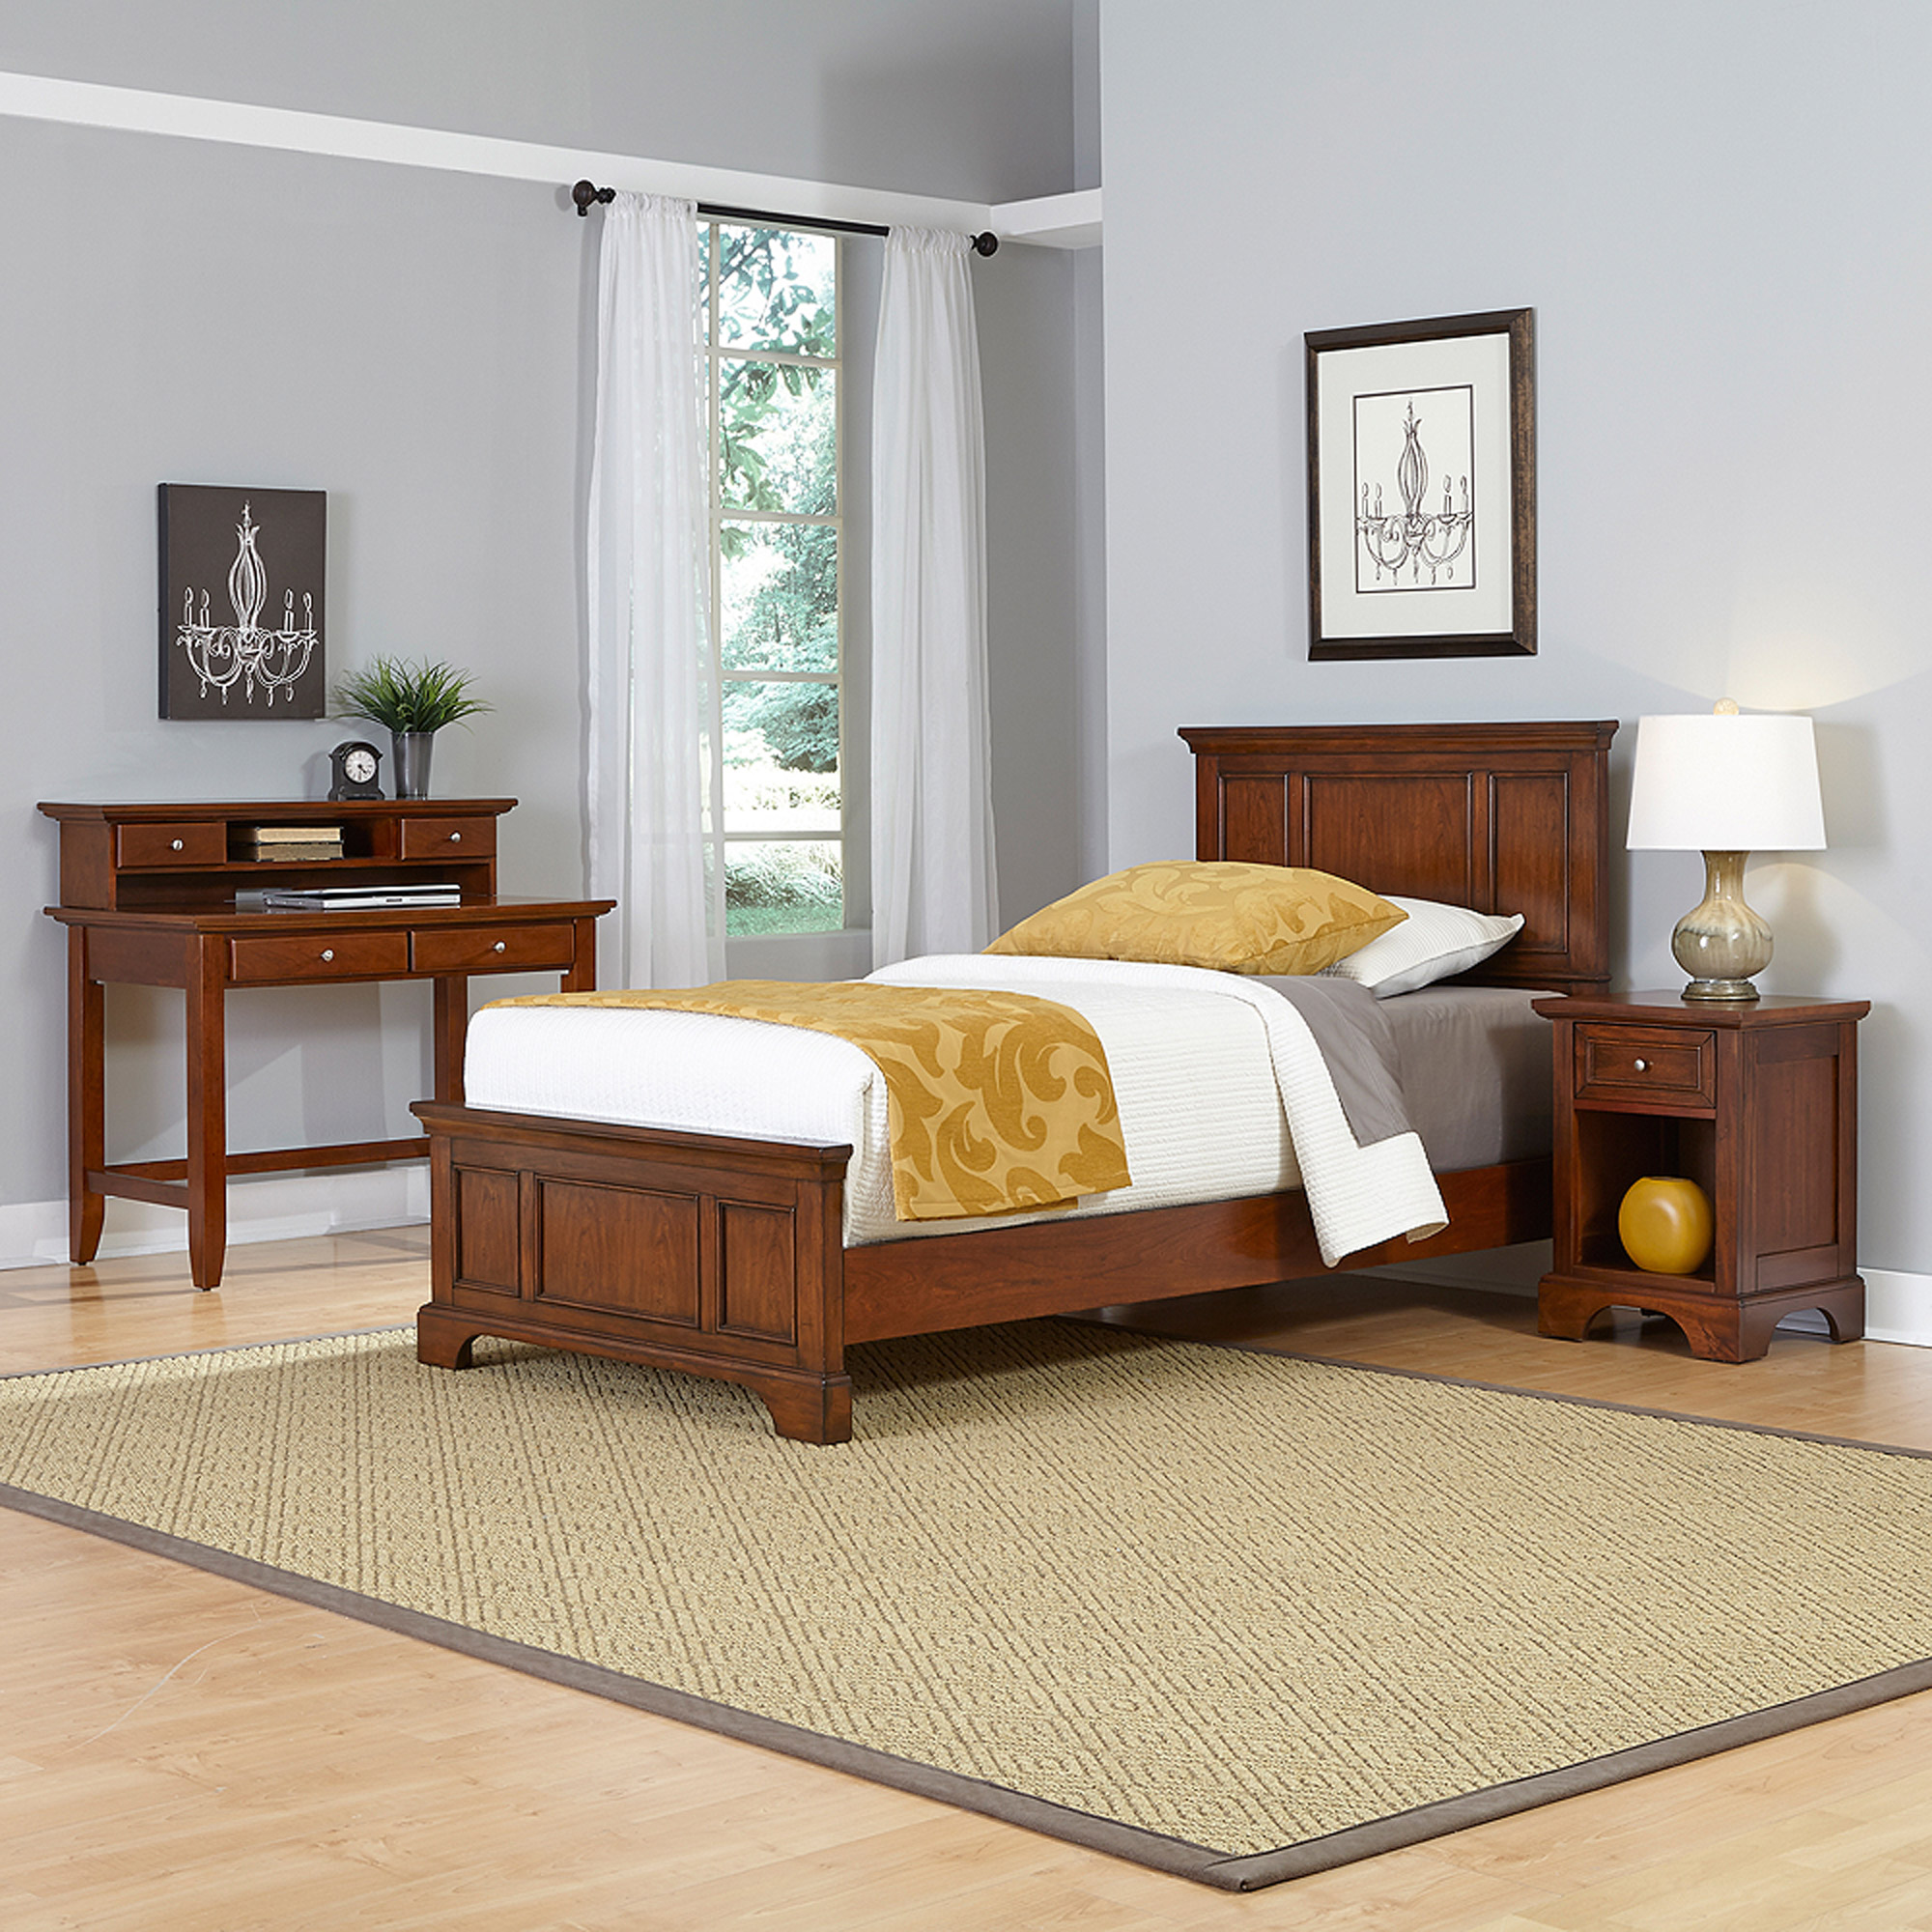 Home Styles Chesapeake Twin Bed, Night Stand and Student Desk with Hutch